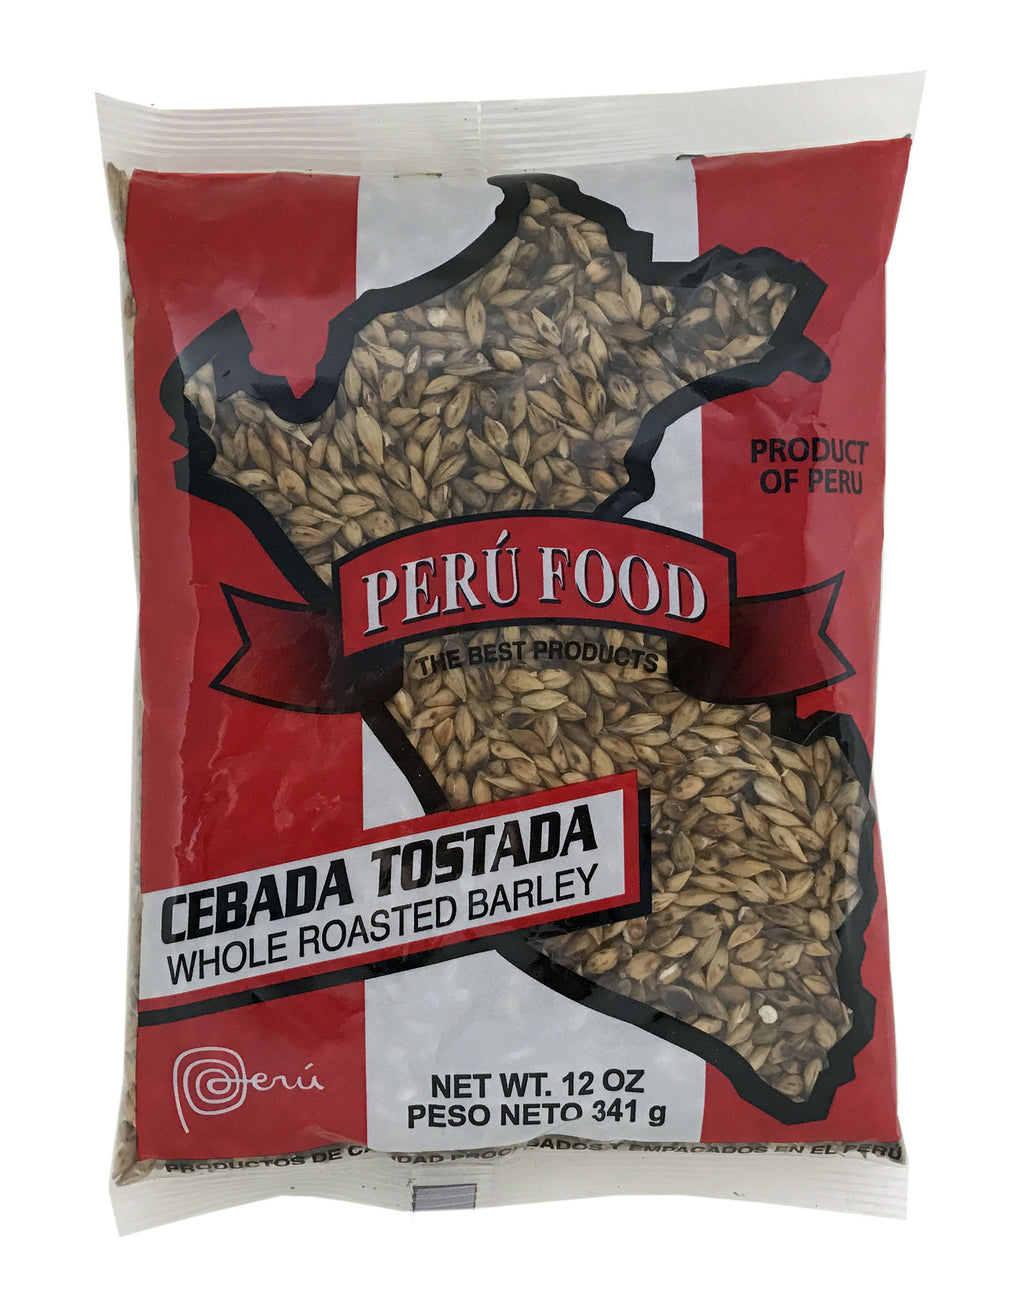 Peru Food Cebada Tostada 12 oz.